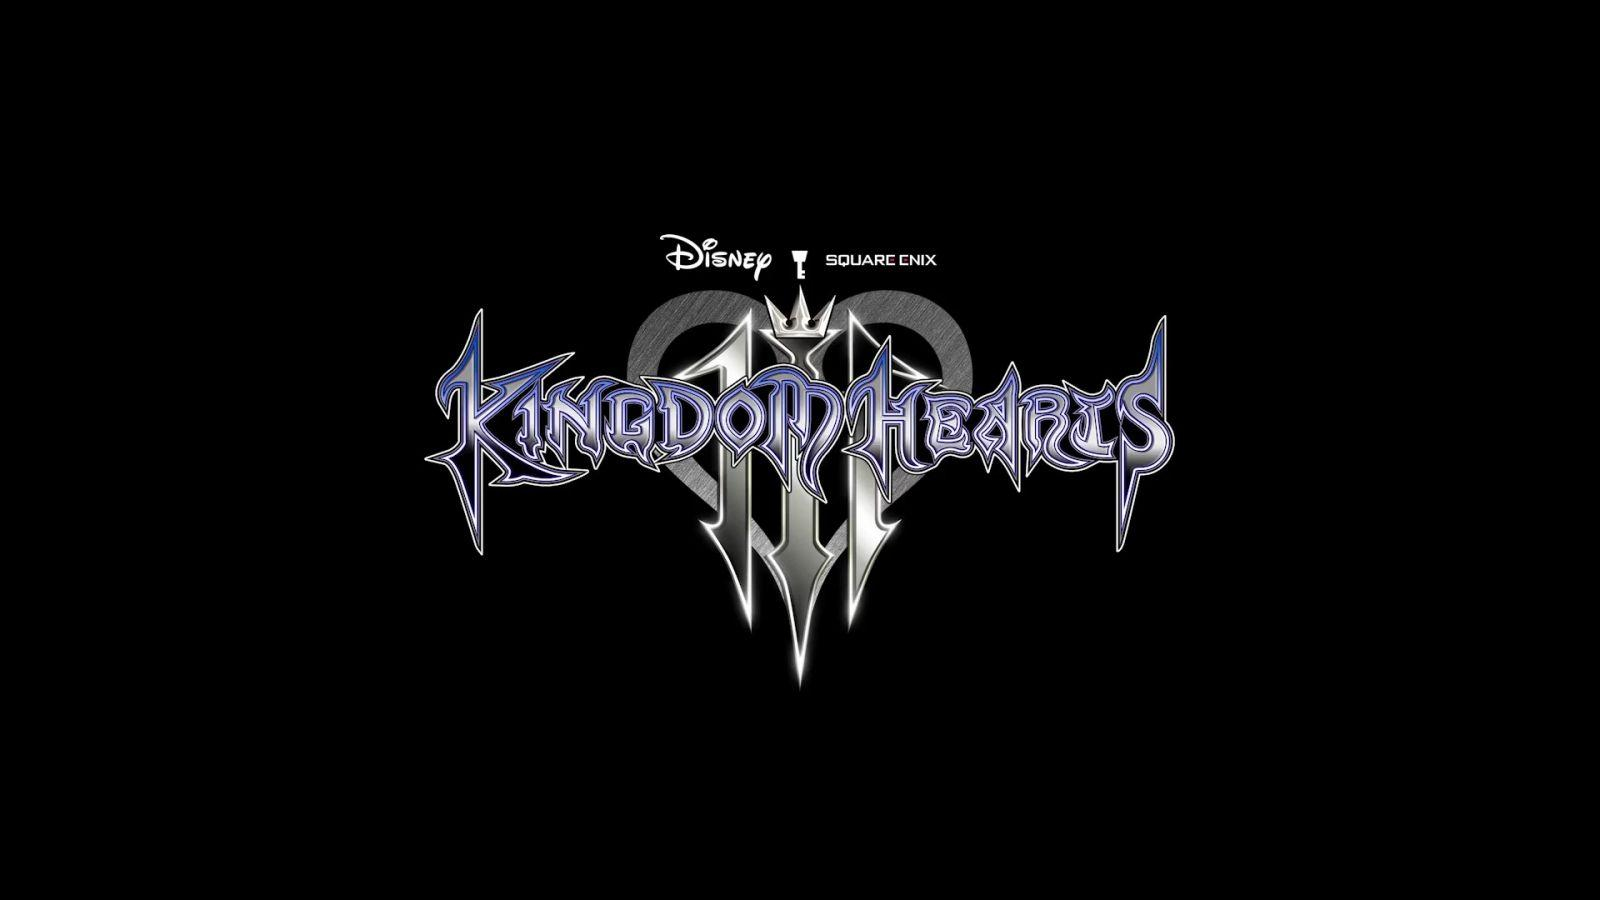 KINGDOM HEARTS III - CLASSIC KINGDOM Trailer 1686.jpg